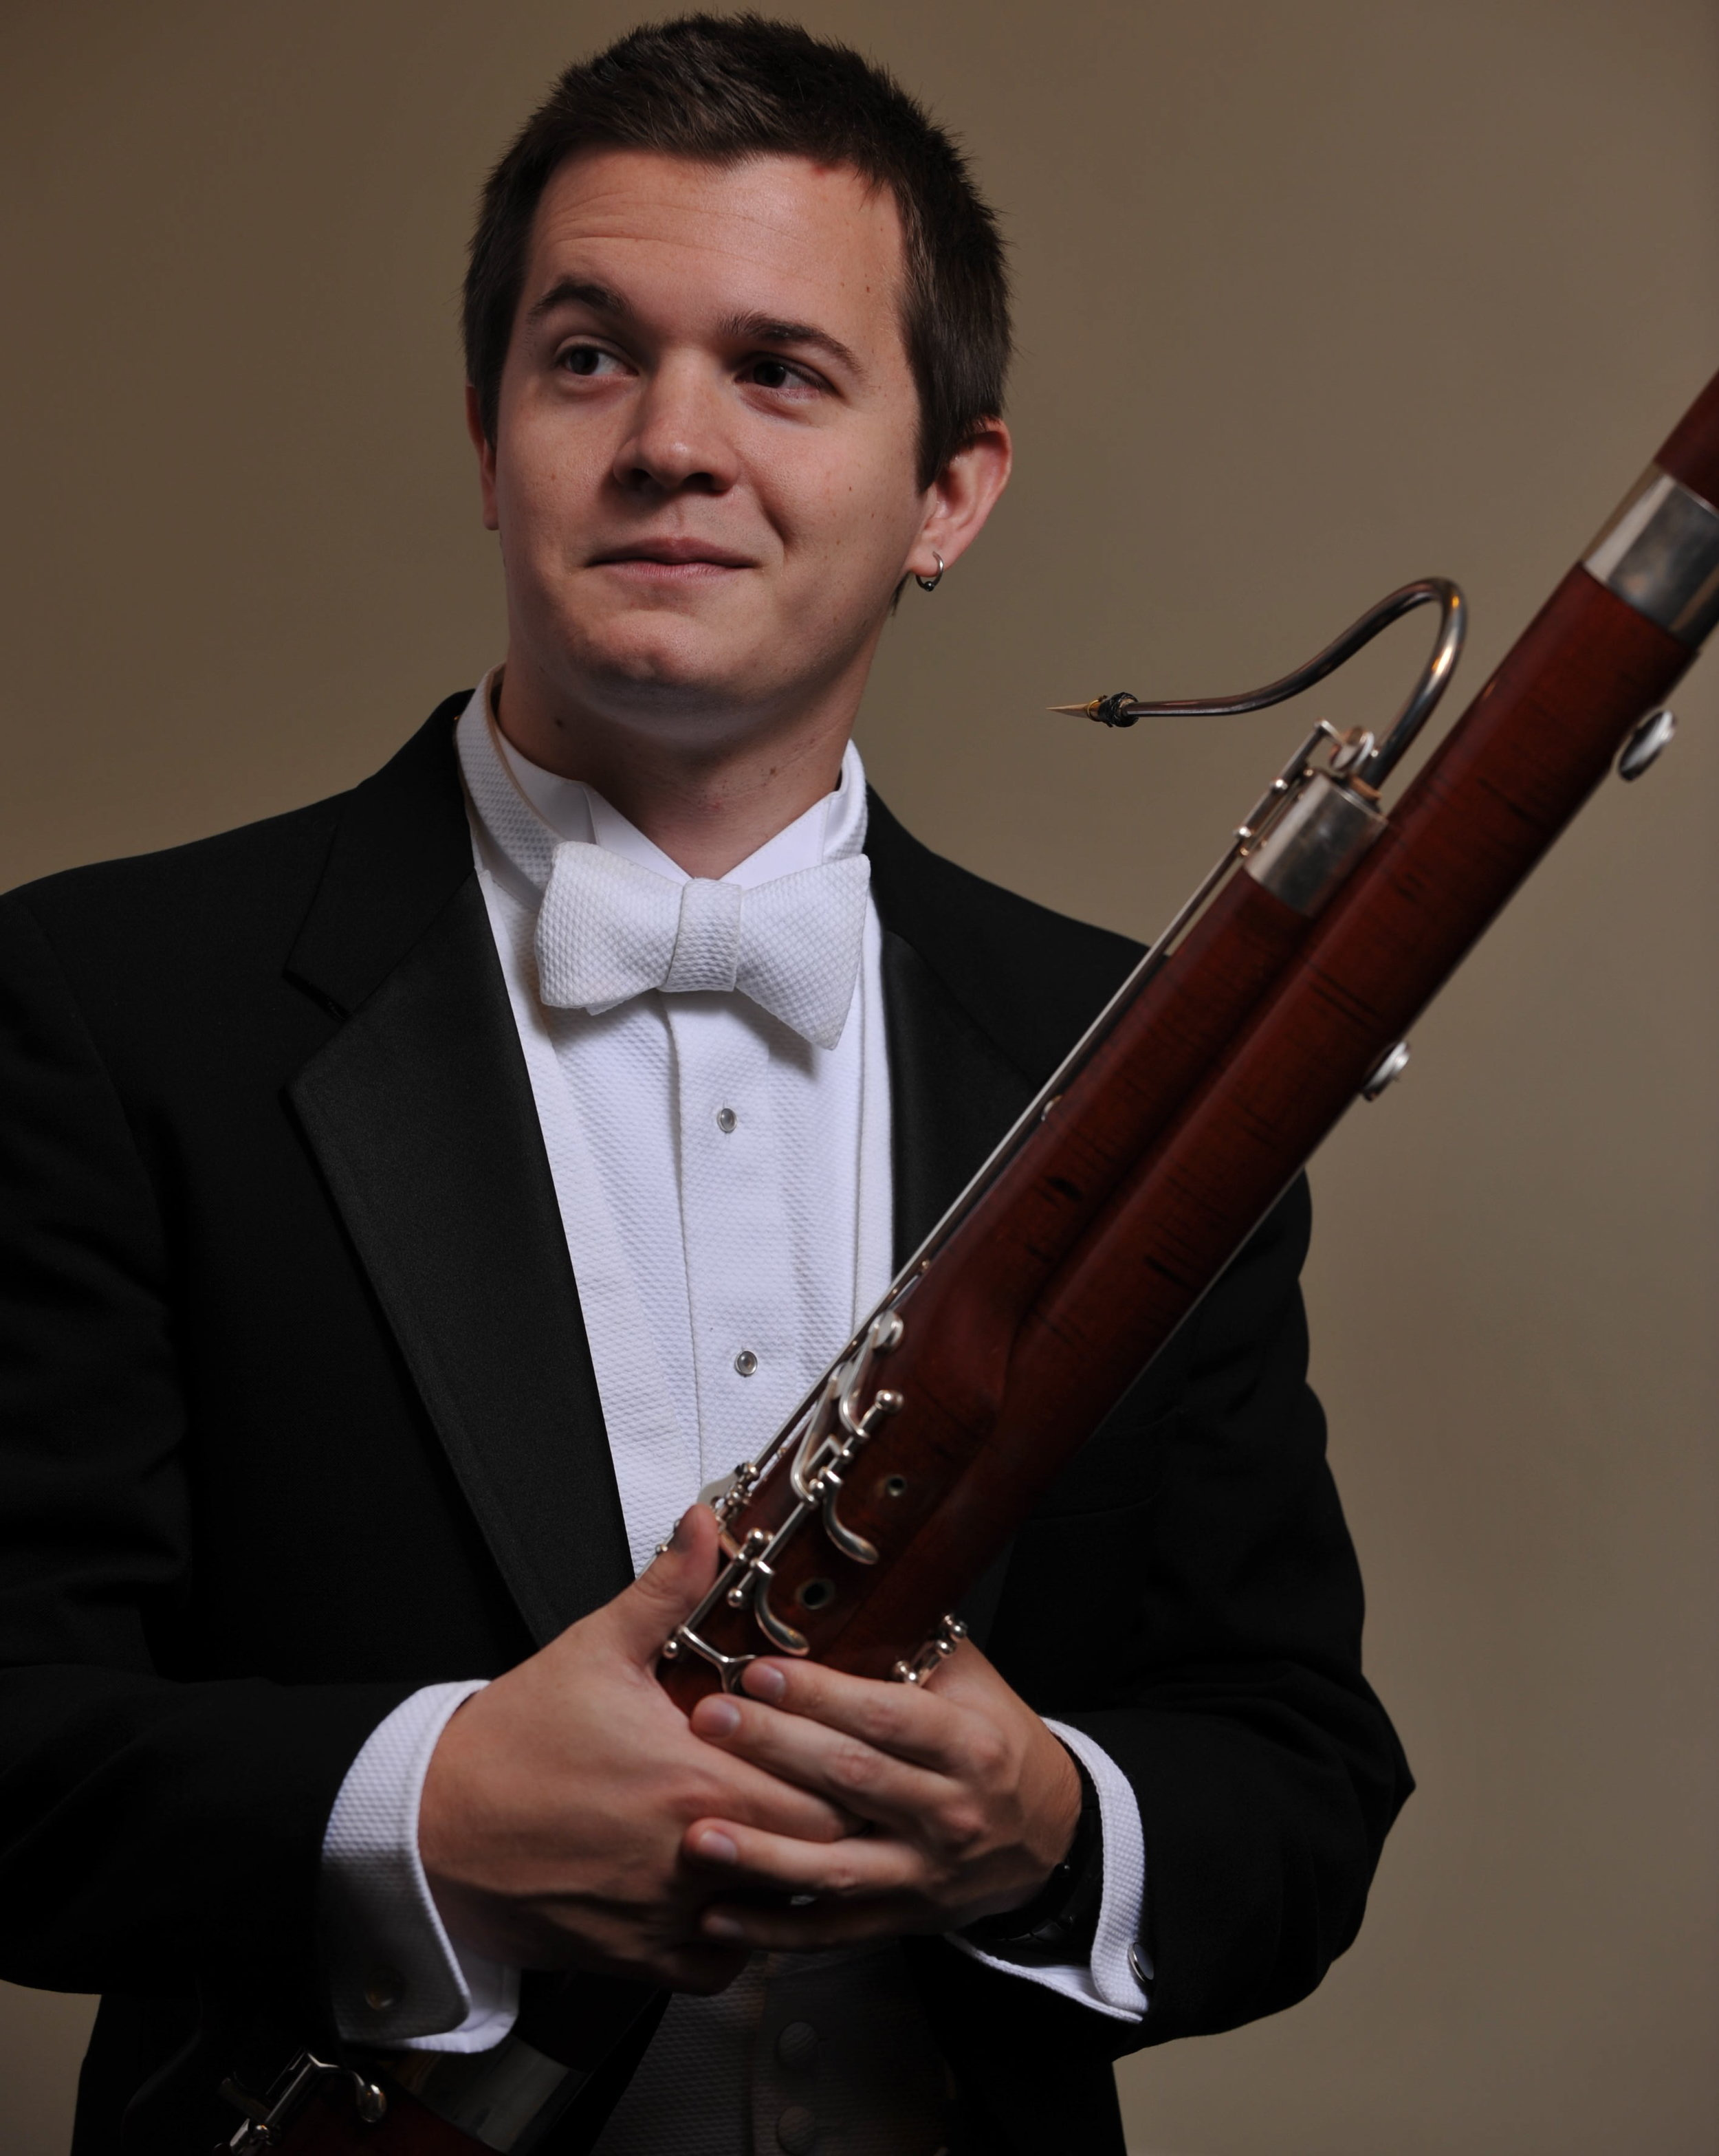 Samuel Blair - Bassoon and Contrabassoon